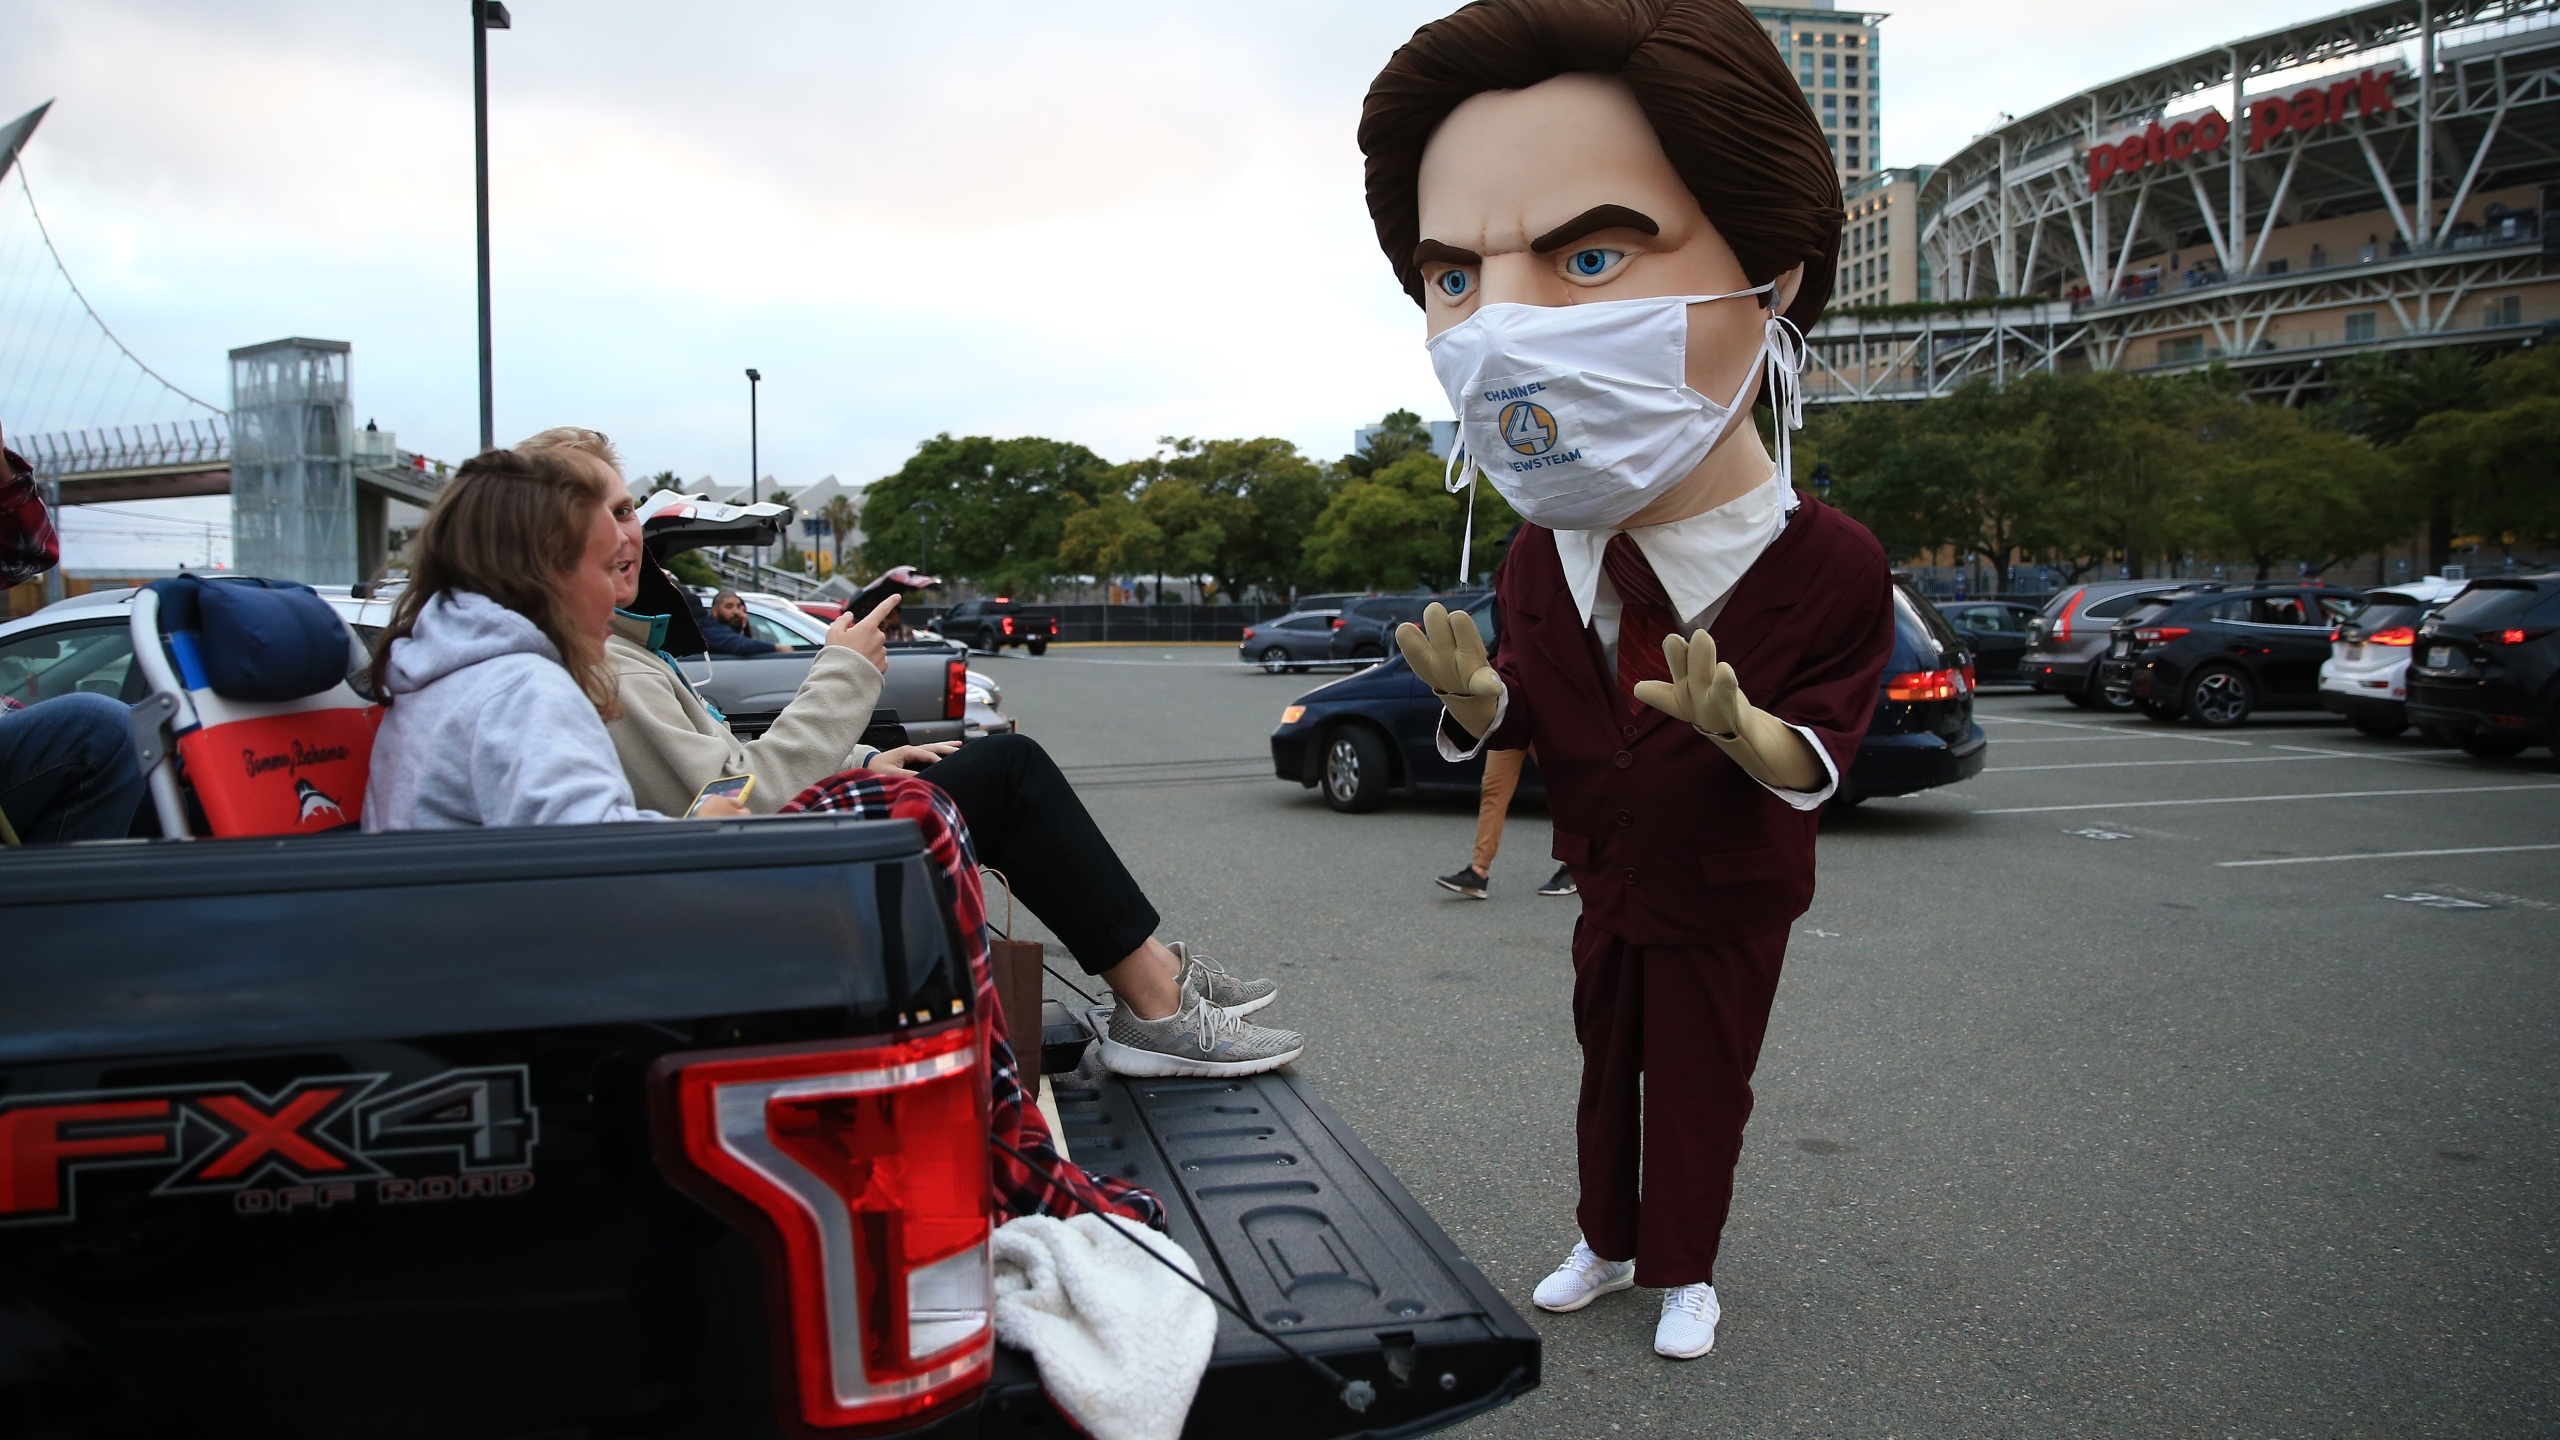 Fans of the San Diego Padres prepare to watch the movie Anchorman as they speak to a mascot of character Ron Burgundy outside of Petco Park at a drive-in movie on June 6, 2020, in San Diego. (Sean M. Haffey/Getty Images)